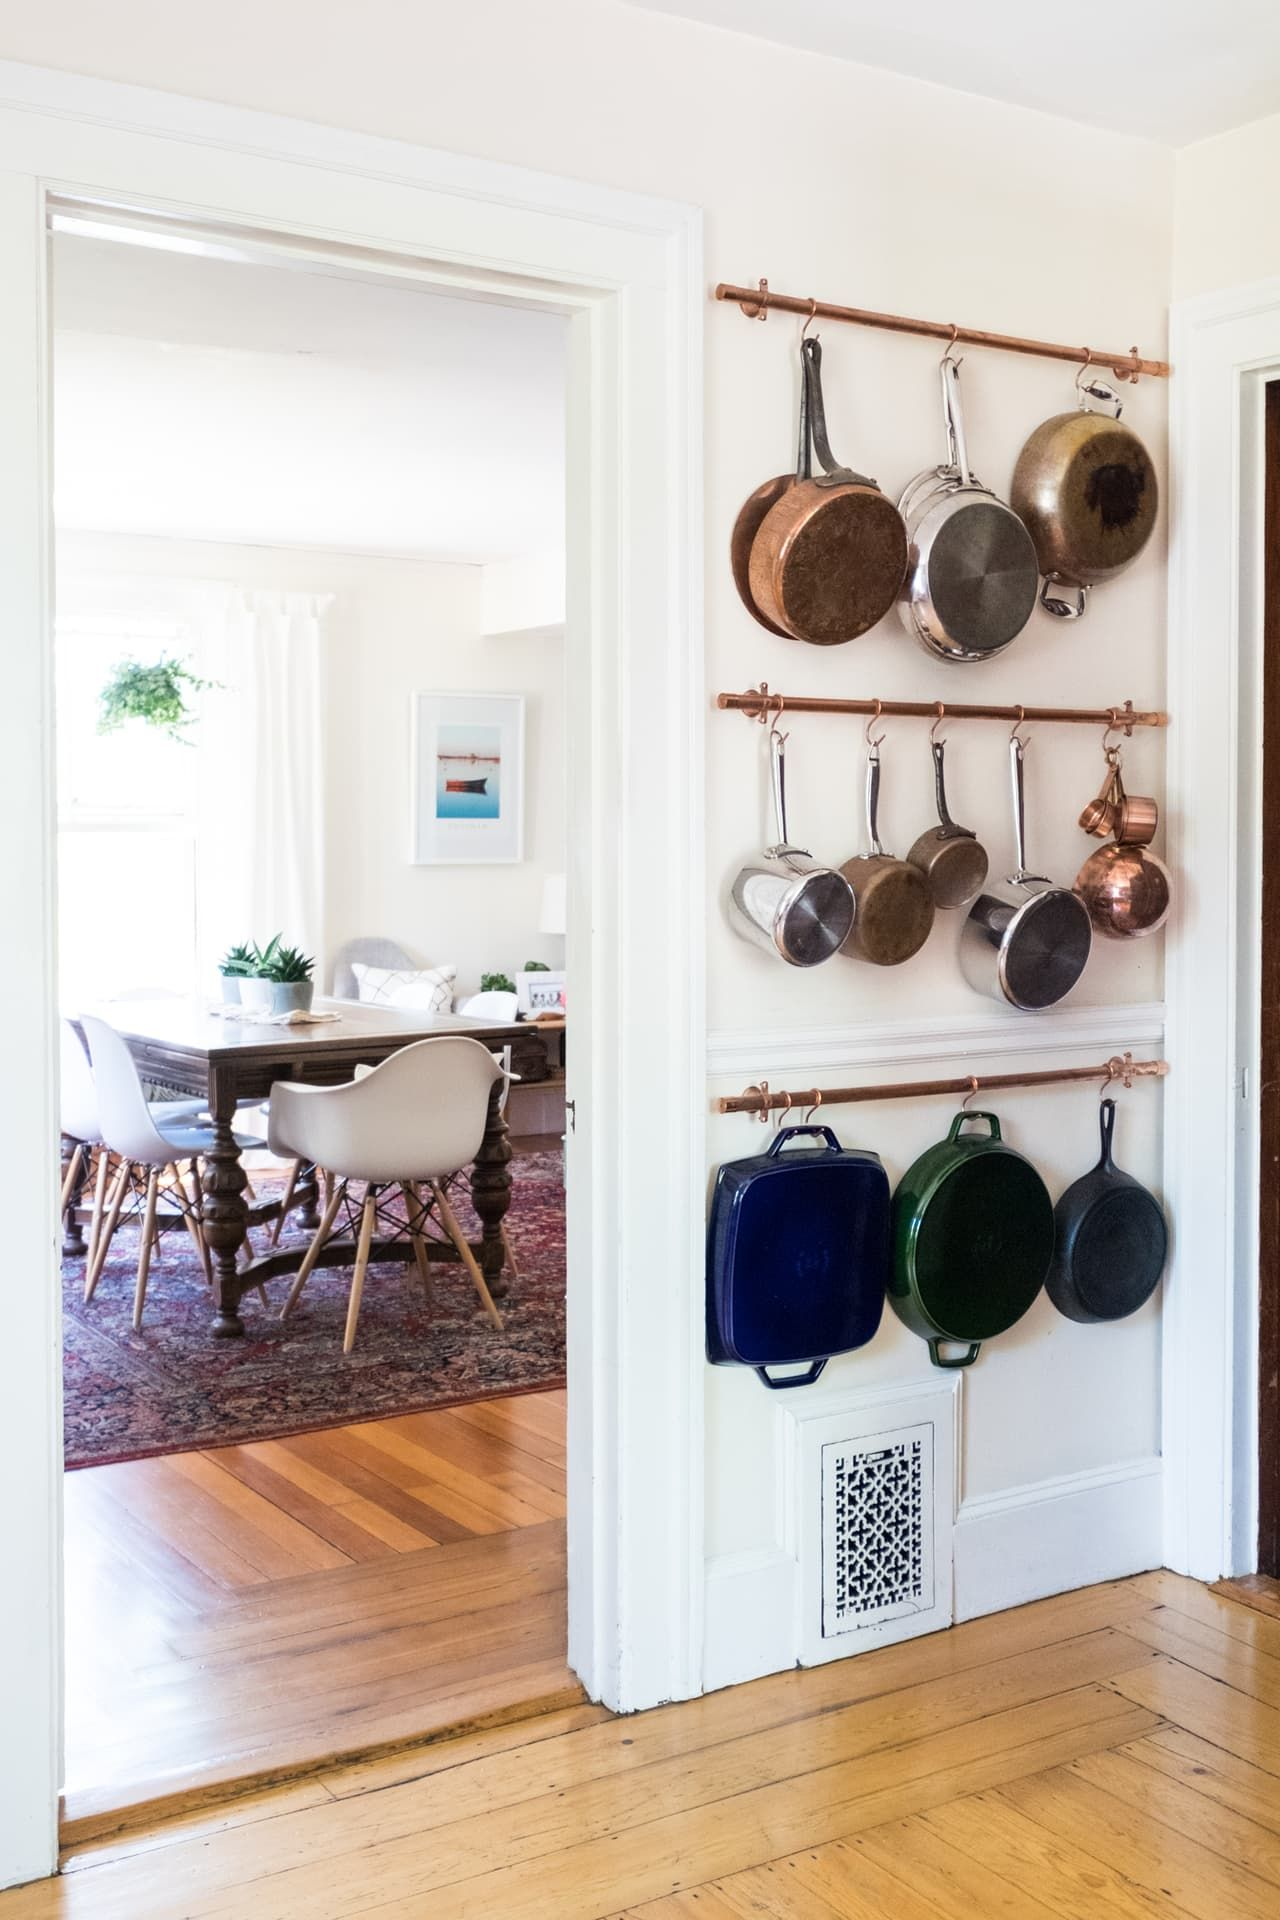 House Tour: A Cheerful & Colorful Rental in Massachusetts ...